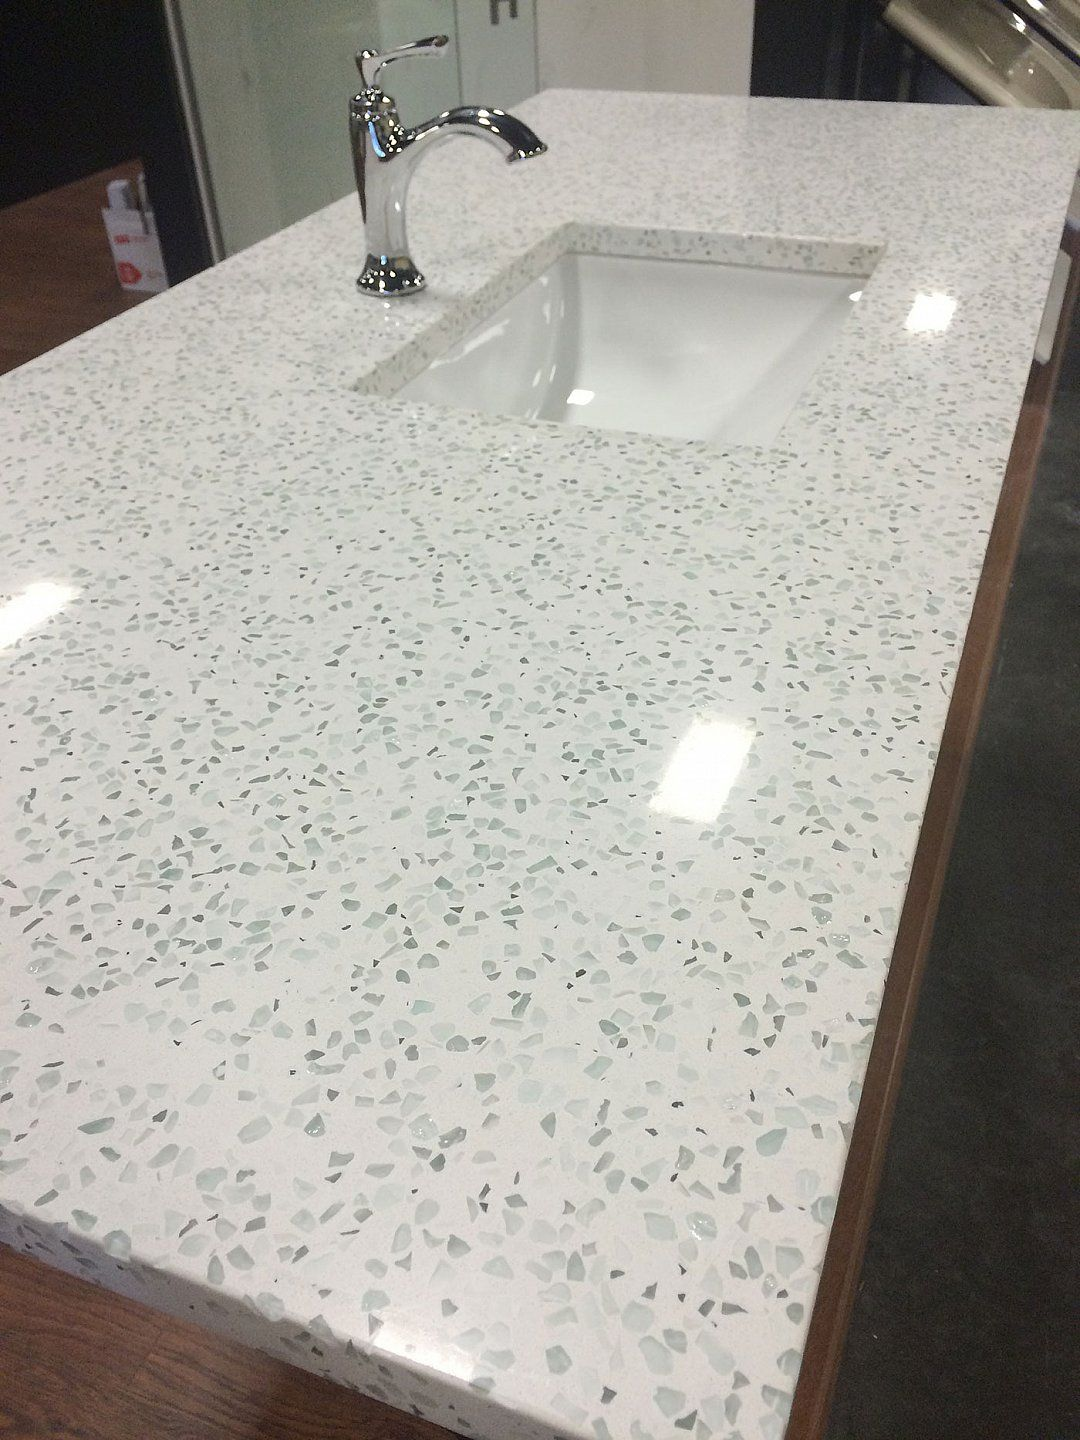 I Am Intrigued By Recycled Glass Countertops They Are A Bit Cheaper Than Quartz Curava In Action Glass Countertops Recycled Glass Countertops Diy Countertops